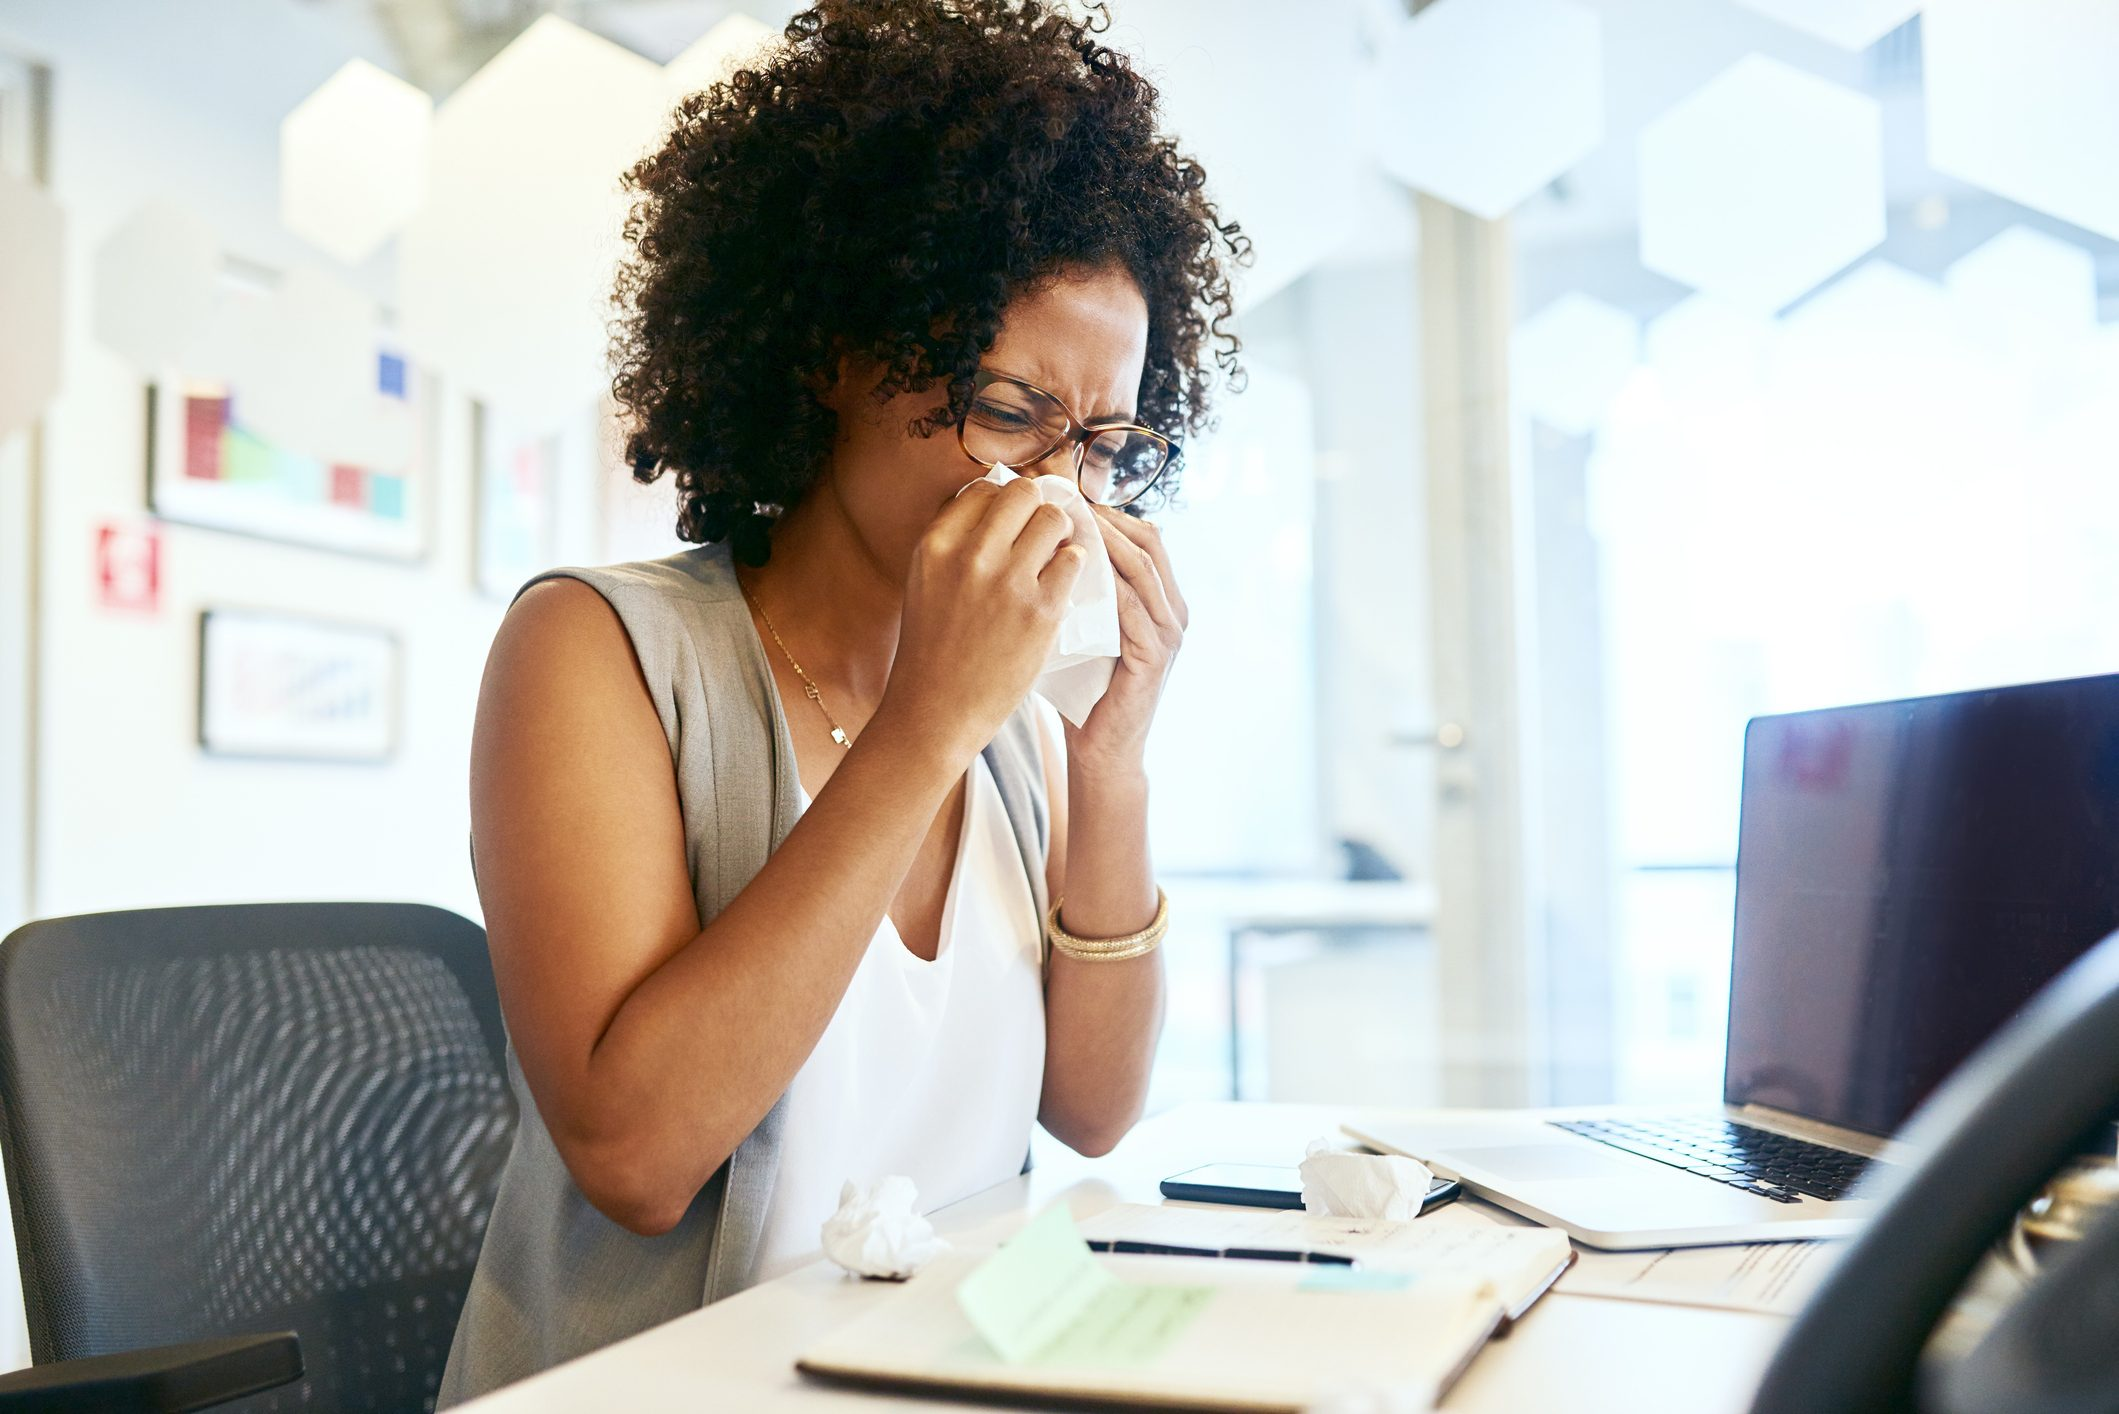 woman sneezing while working at desk